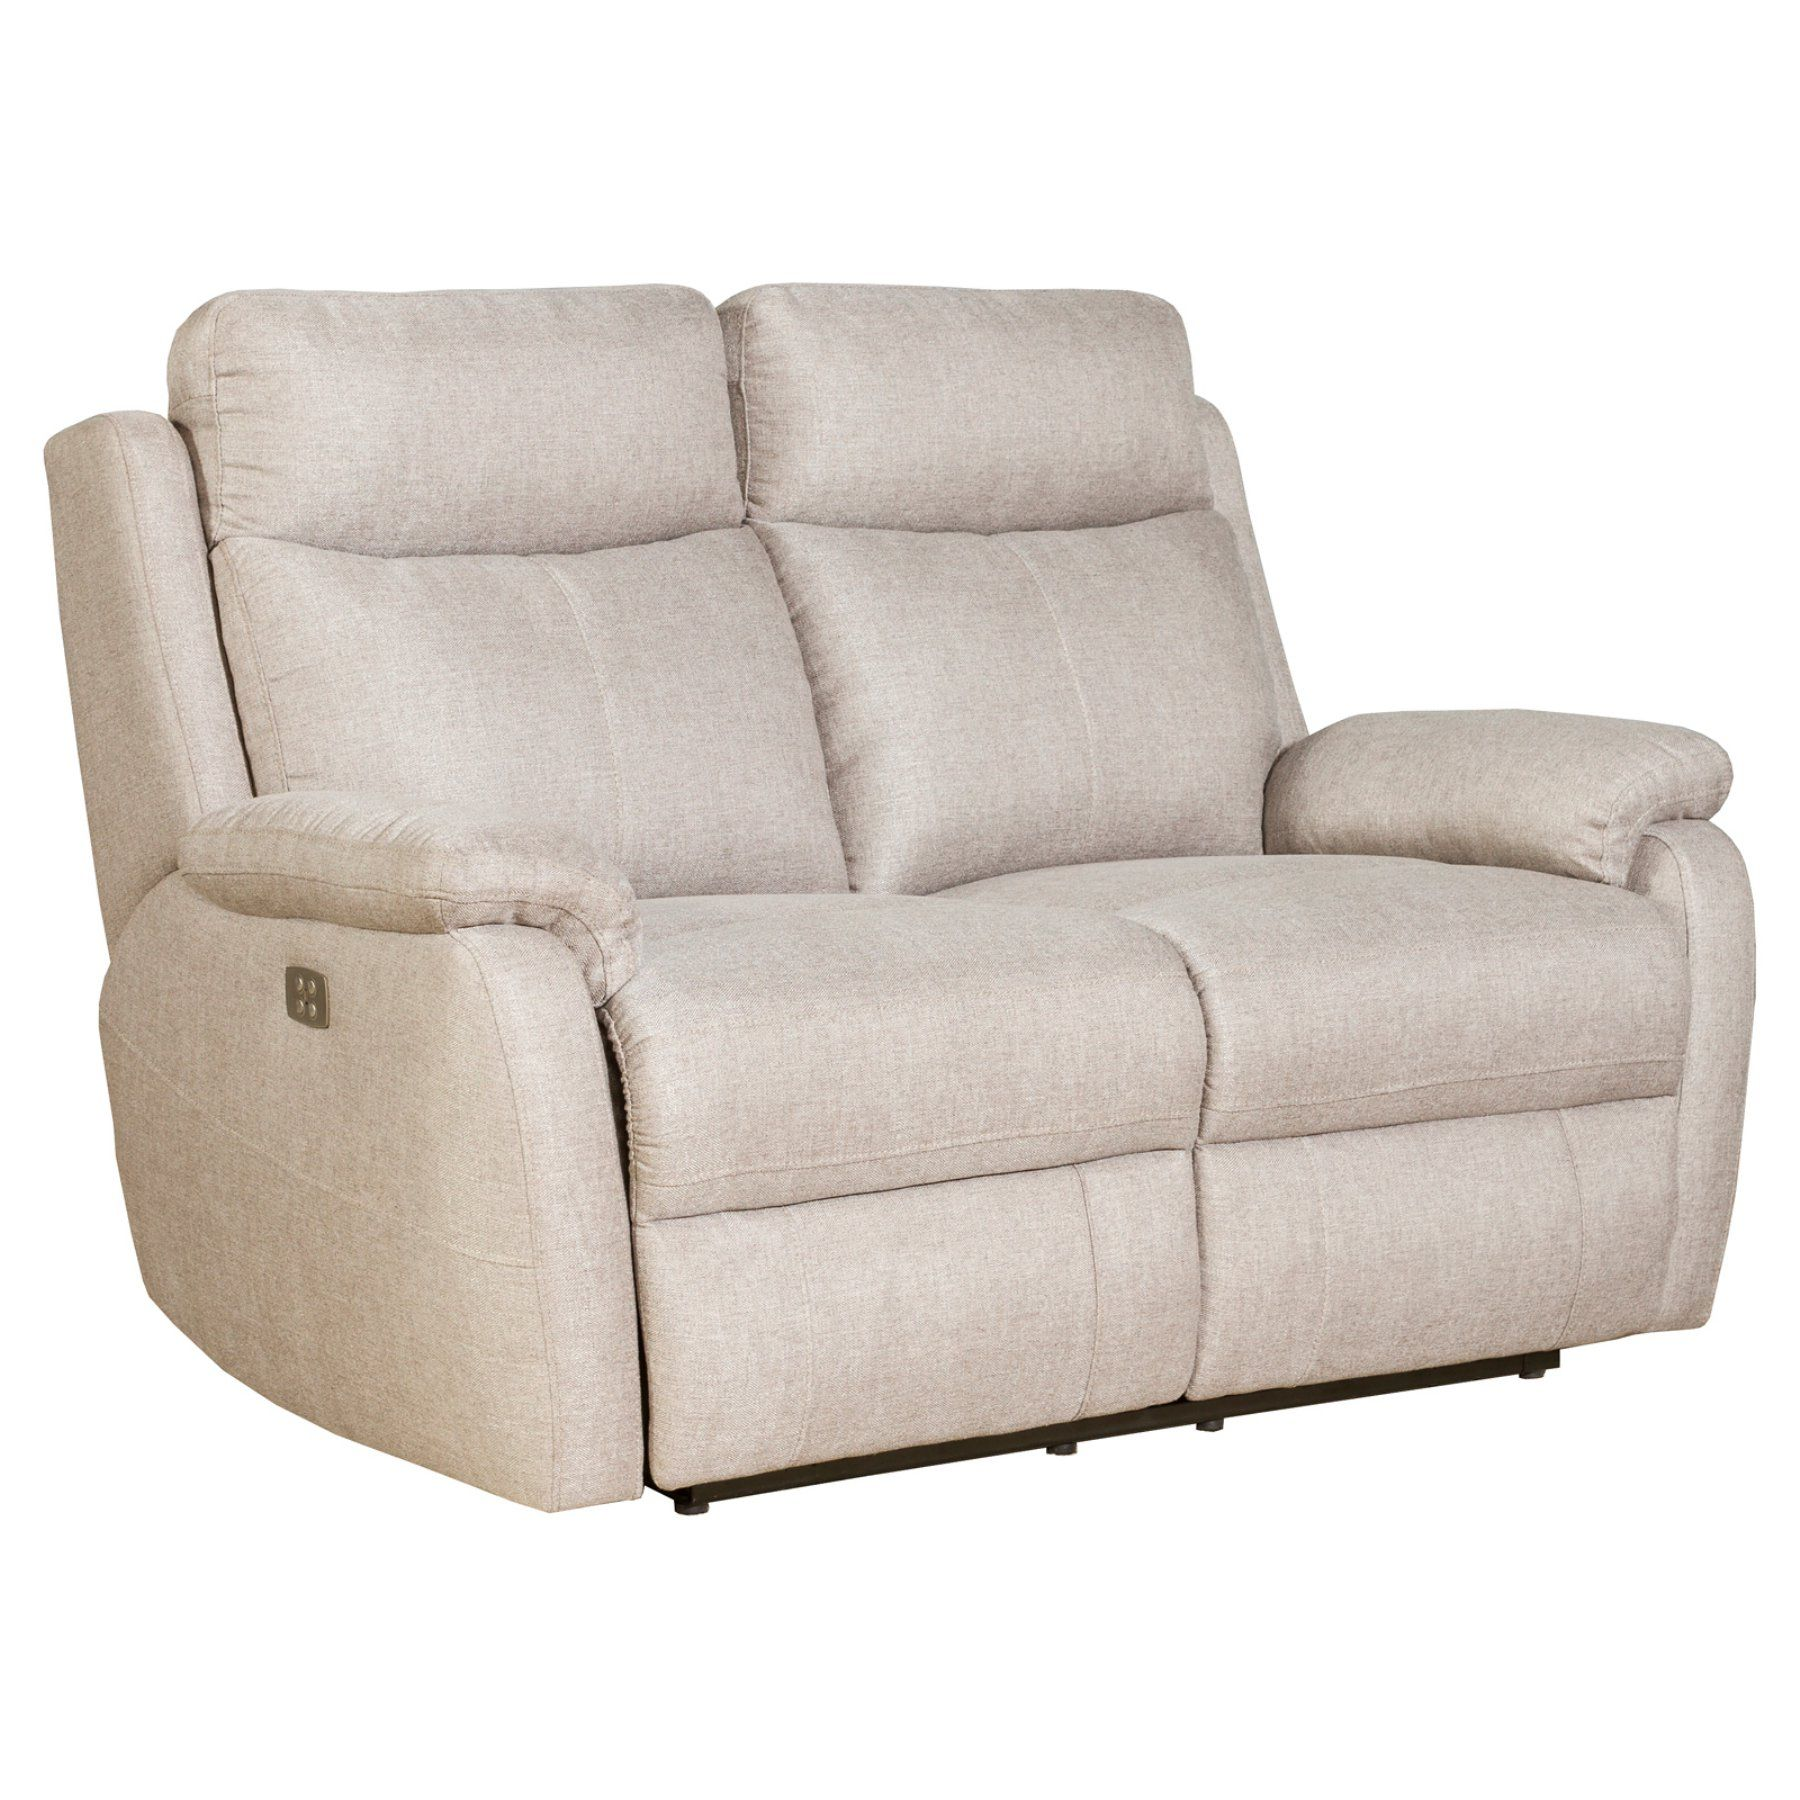 Barcalounger Brockton Power Reclining Loveseat With Power Head Rests 29ph3172107886 Power